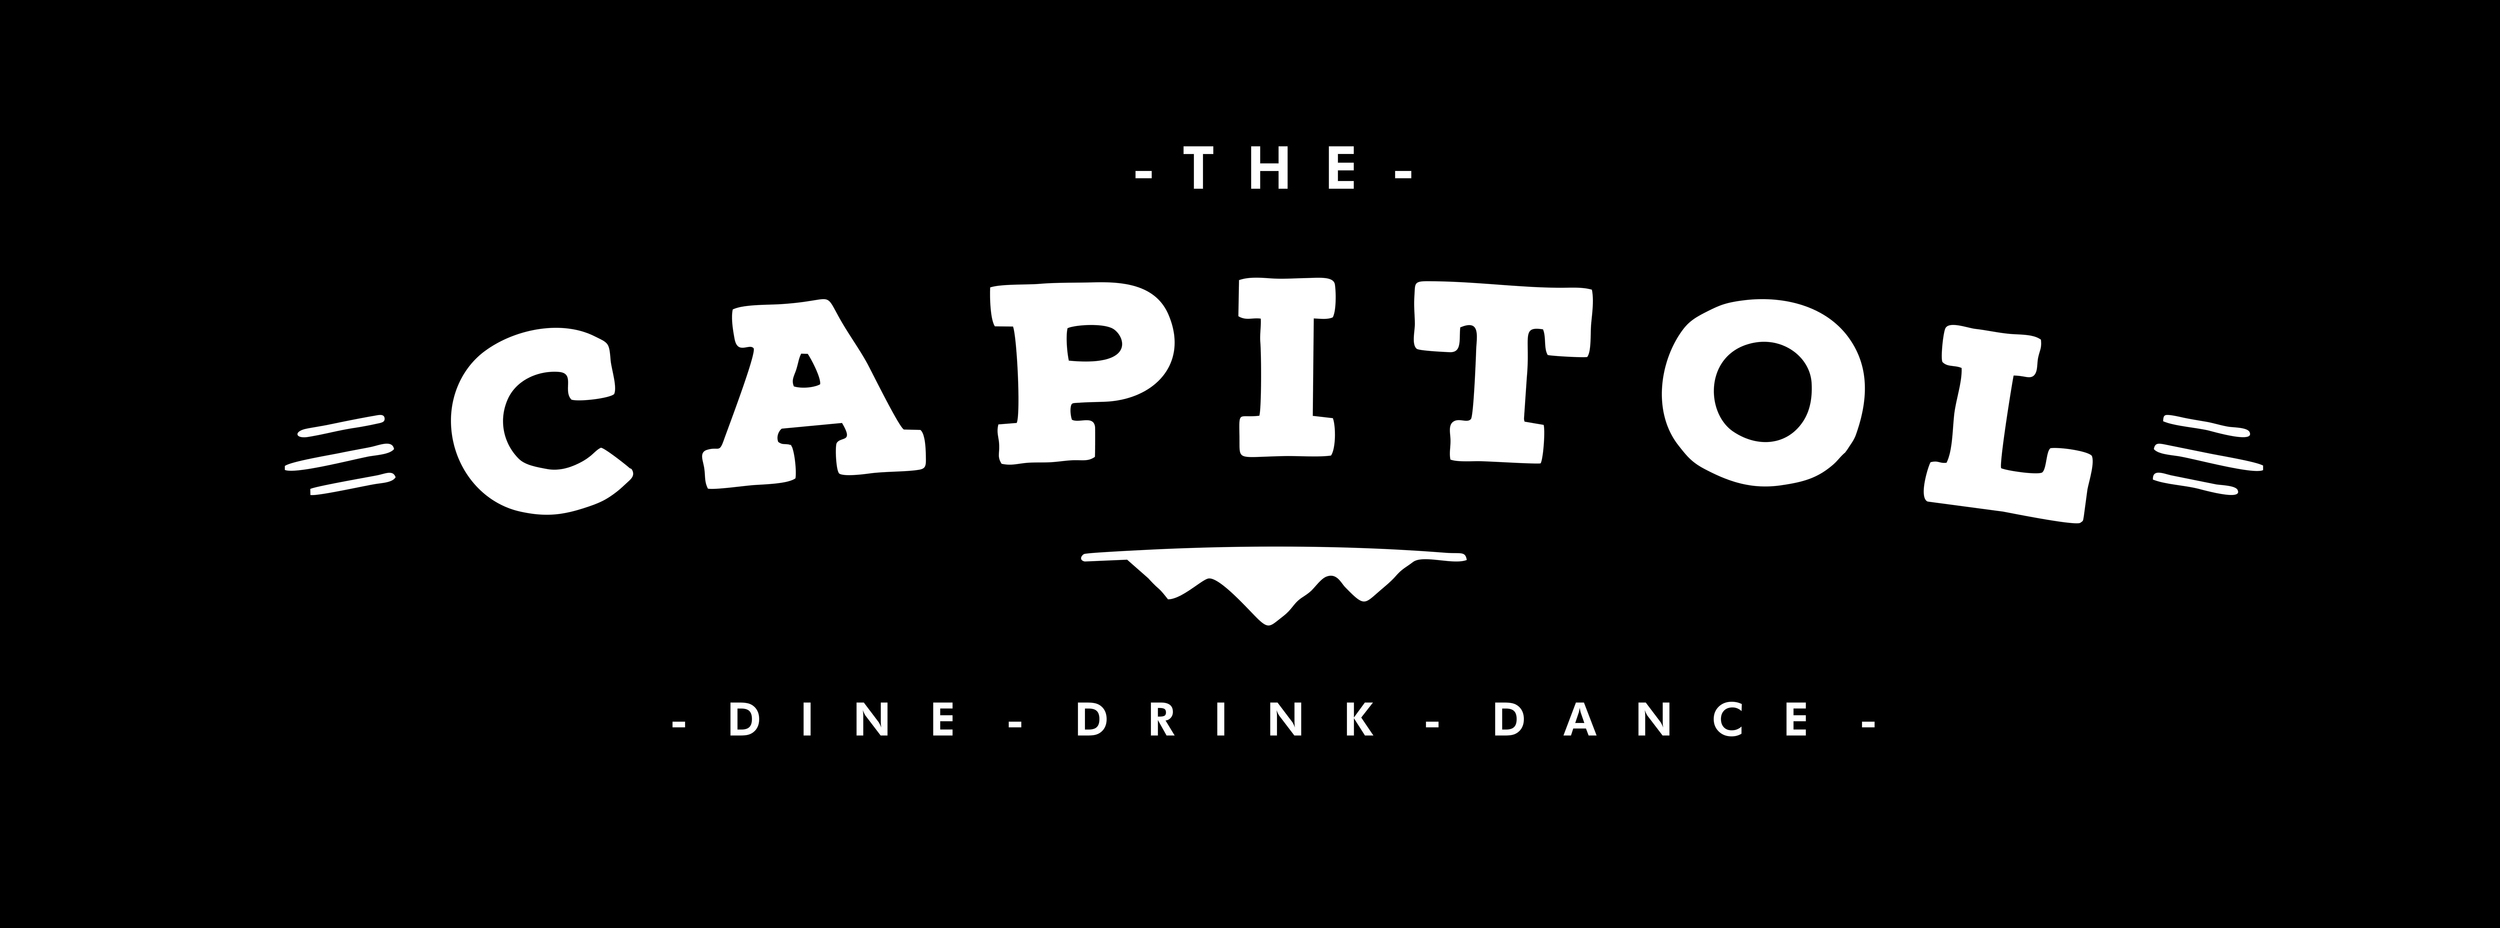 The Capitol is one of our favorite establishments here in Bend.. http://www.thecapitolbend.com/